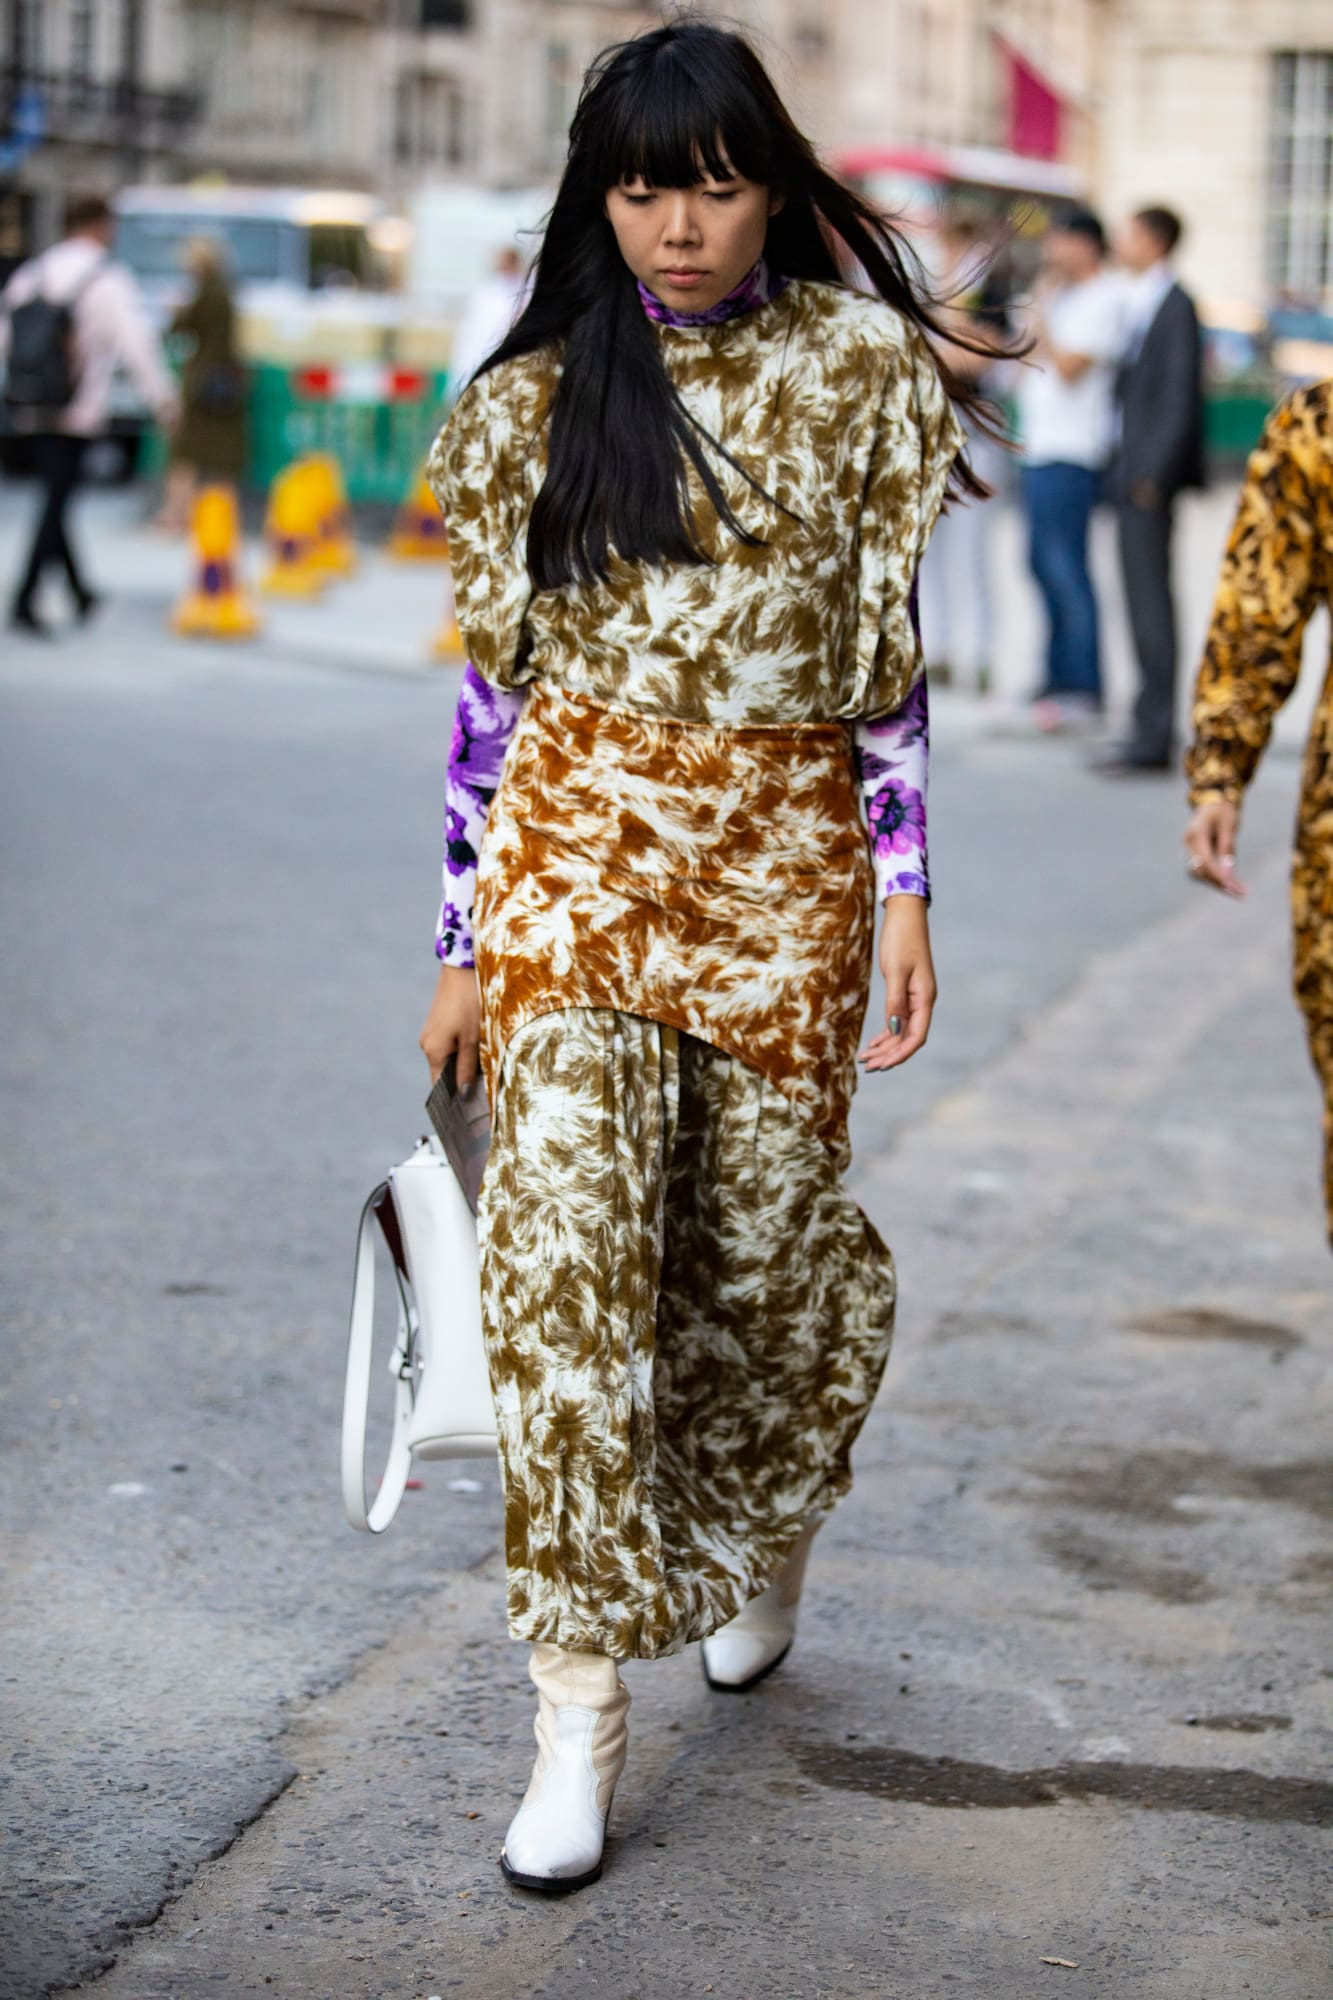 Best Street Style Looks of LFW Spring 2019